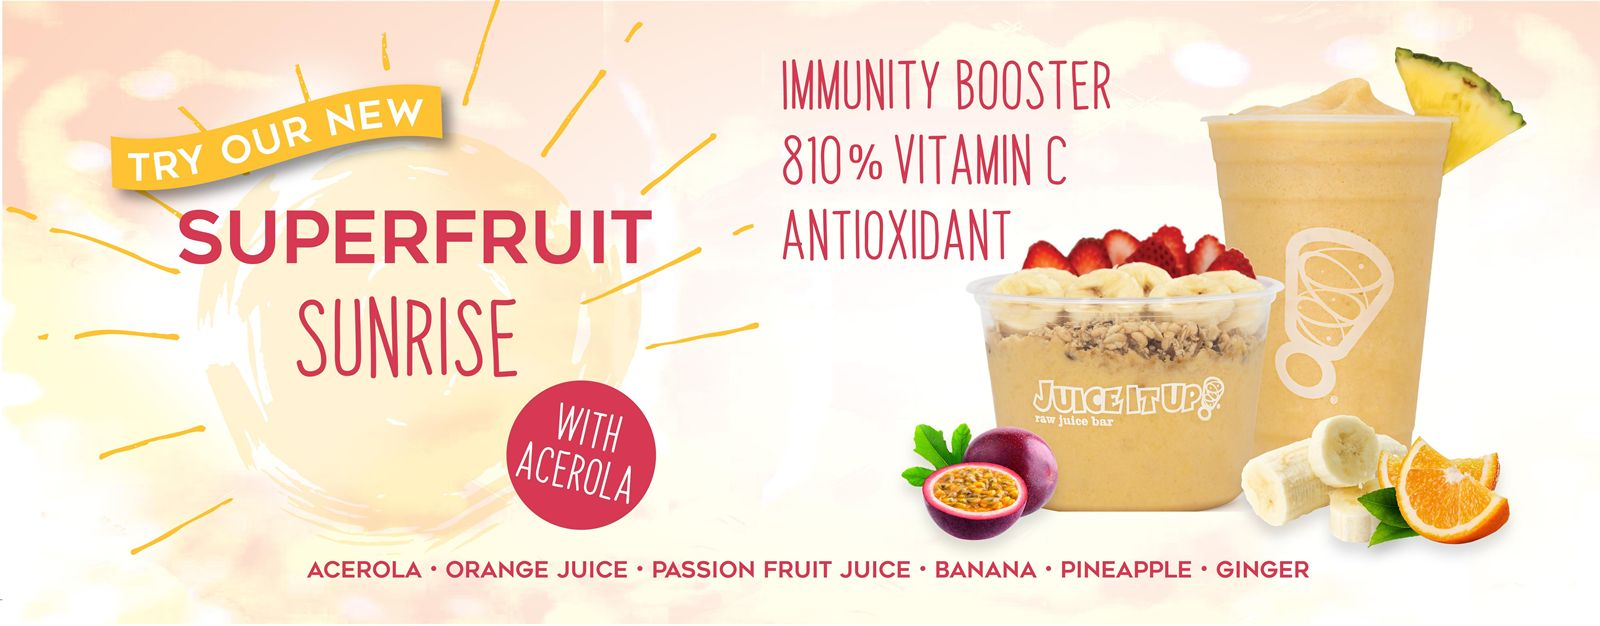 Juice It Up! Focuses on Functional with New Superfruit Sunrise